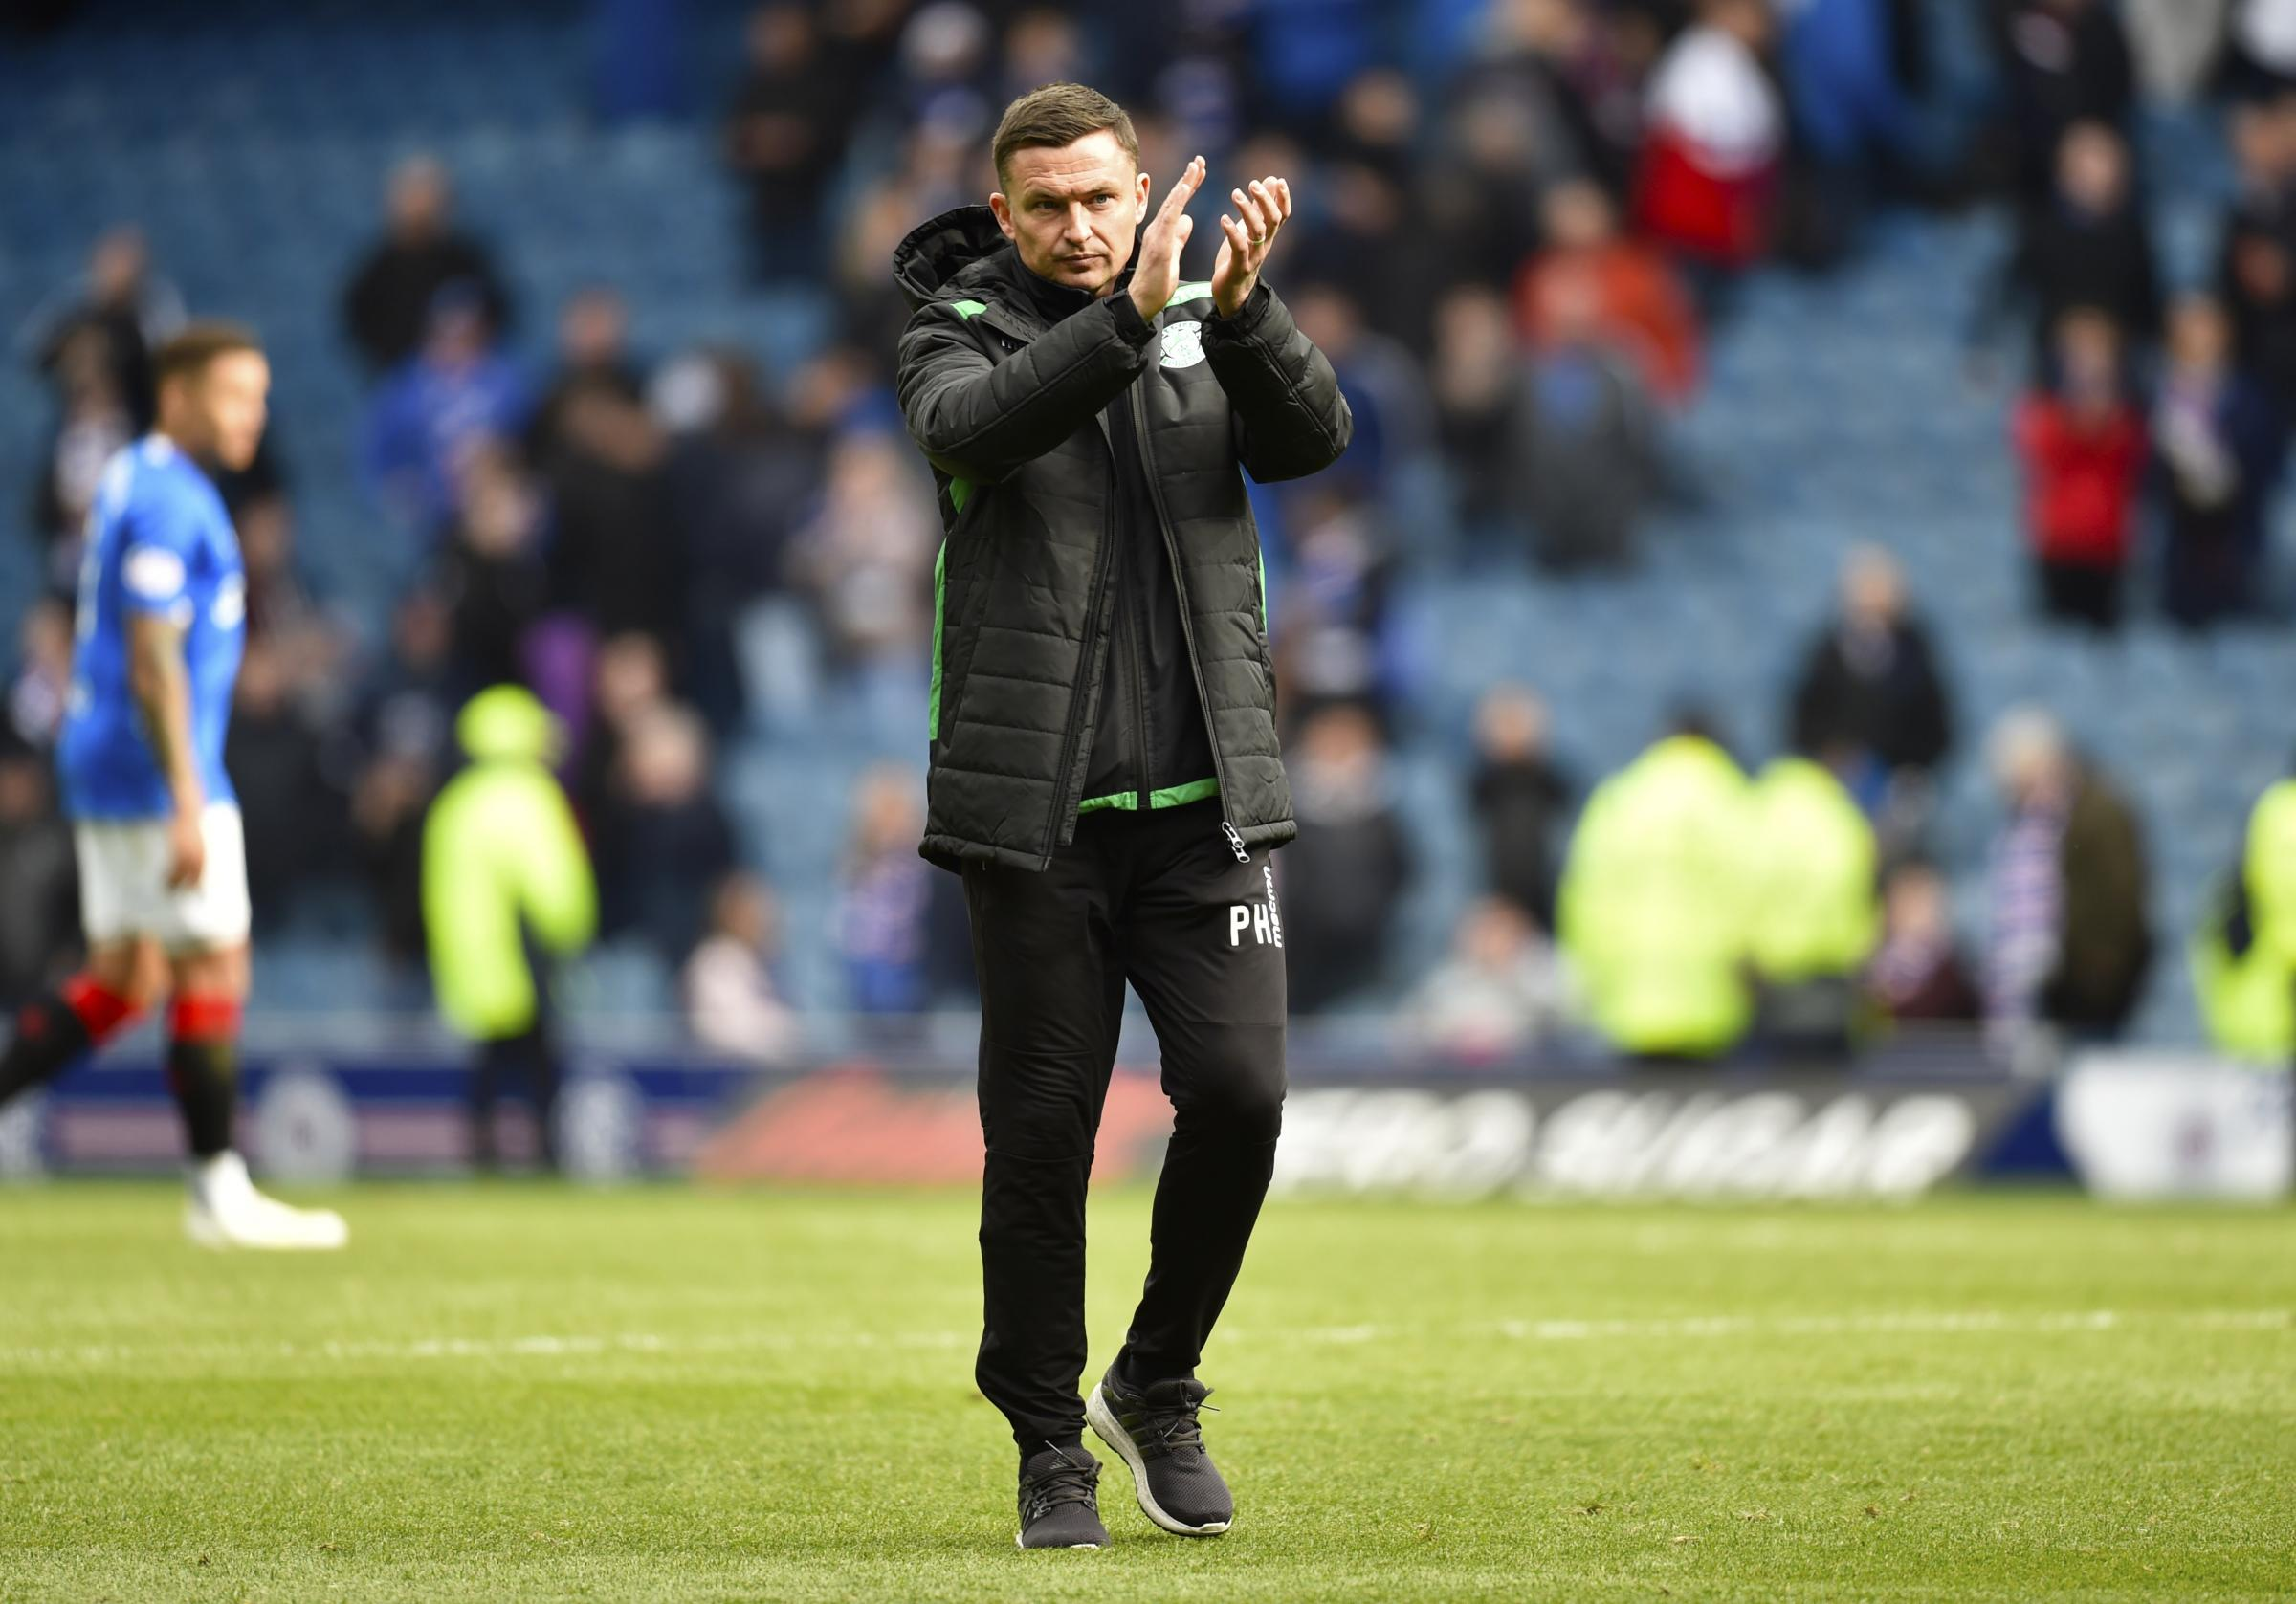 Hibernian manager Paul Heckingbottom keen to move on from Rangers drubbing